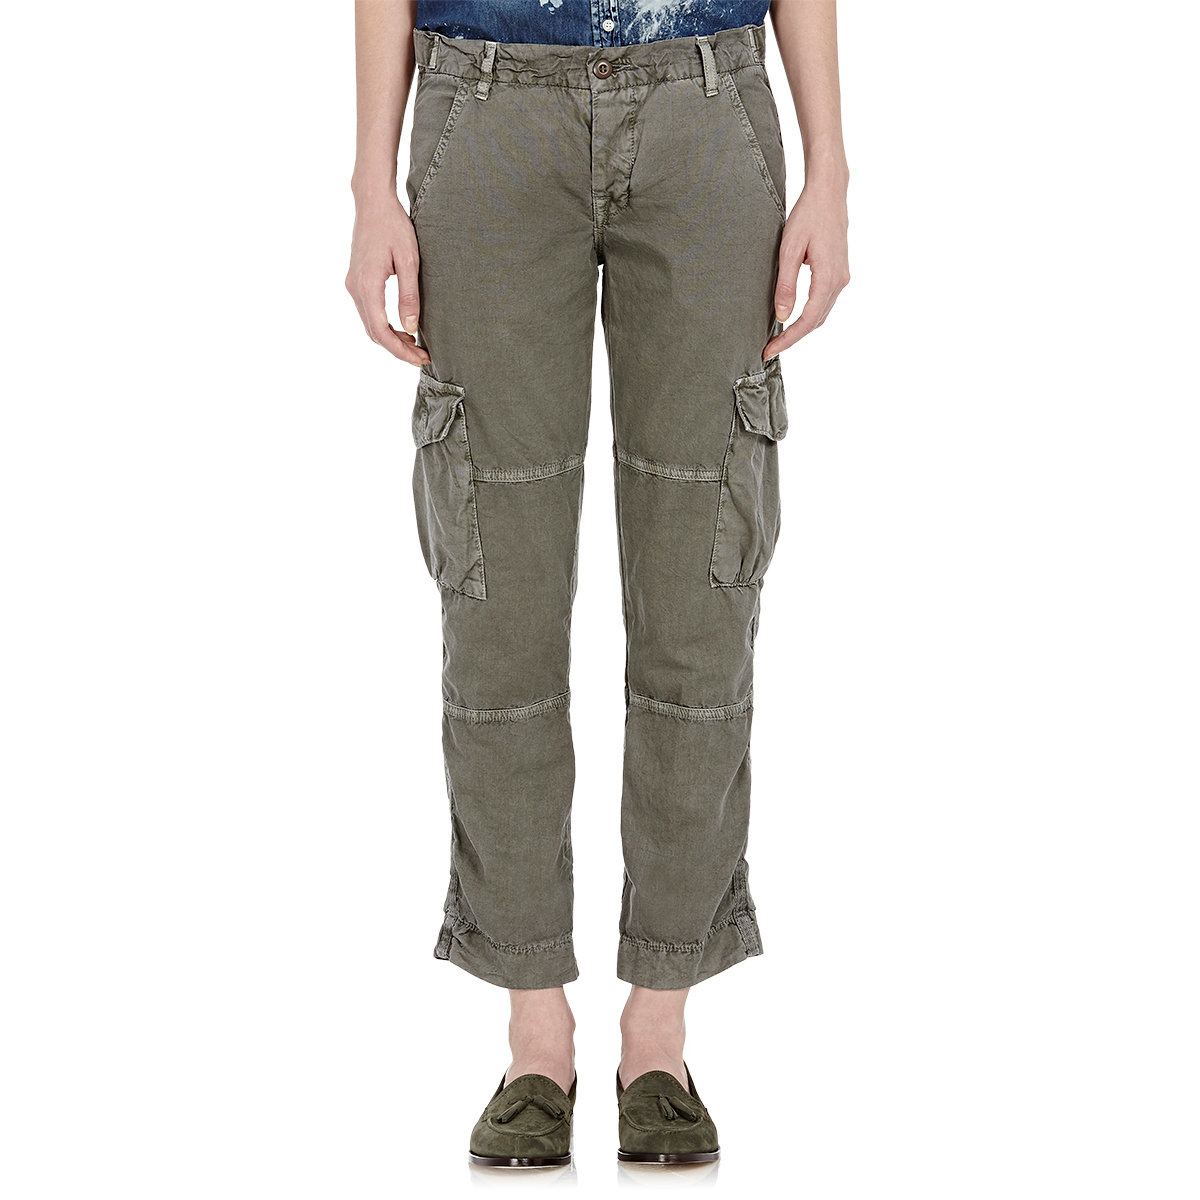 Beautiful Handmade Womens Green Casual Cargo Pants 28quot  29quot  30quot